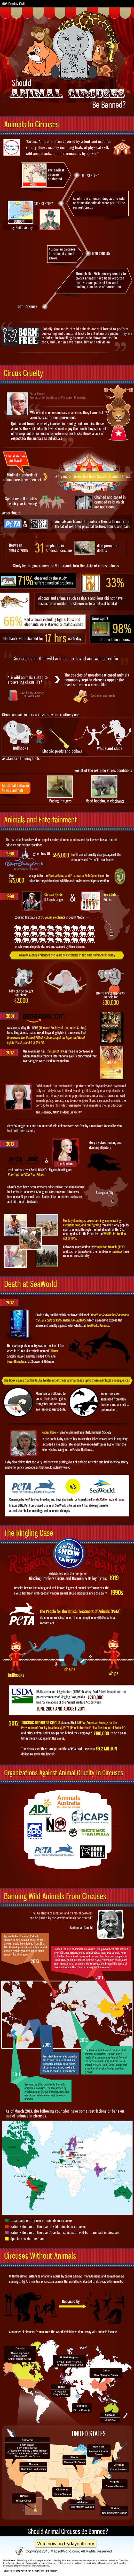 should animal circuses be banned fryday poll facts animal welfare